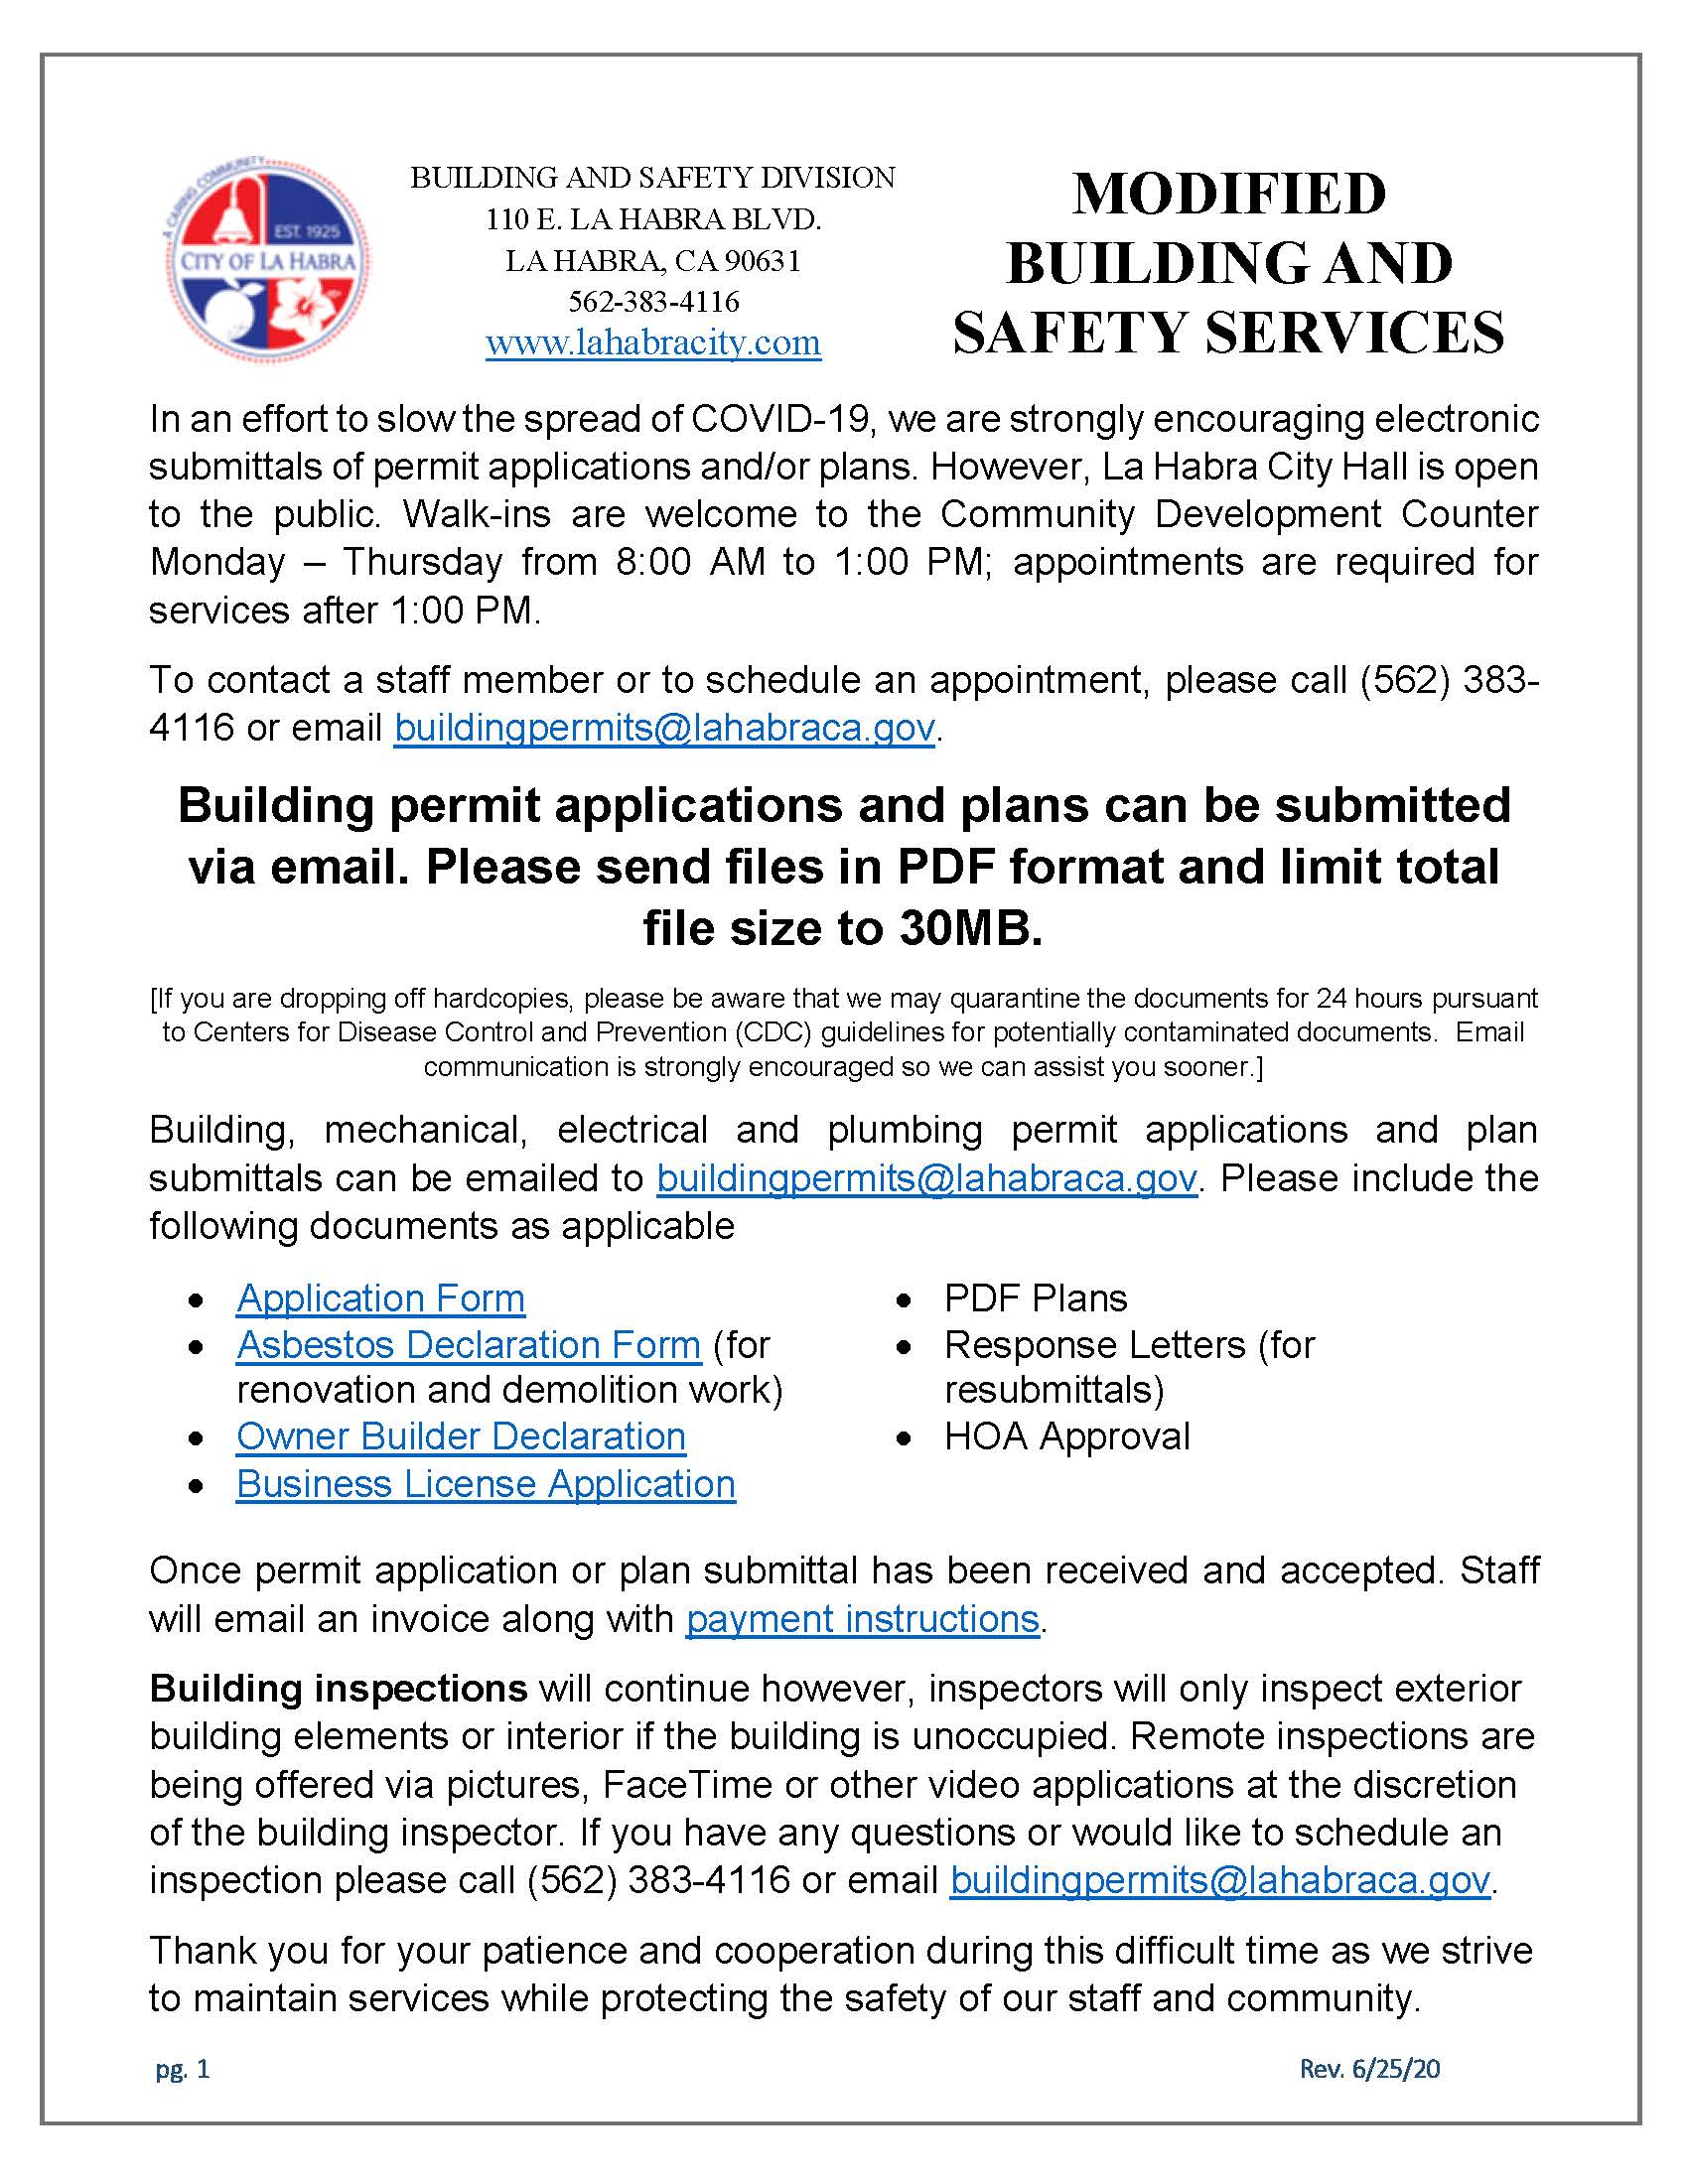 Modified Building and Safety Services - Open_Page_1